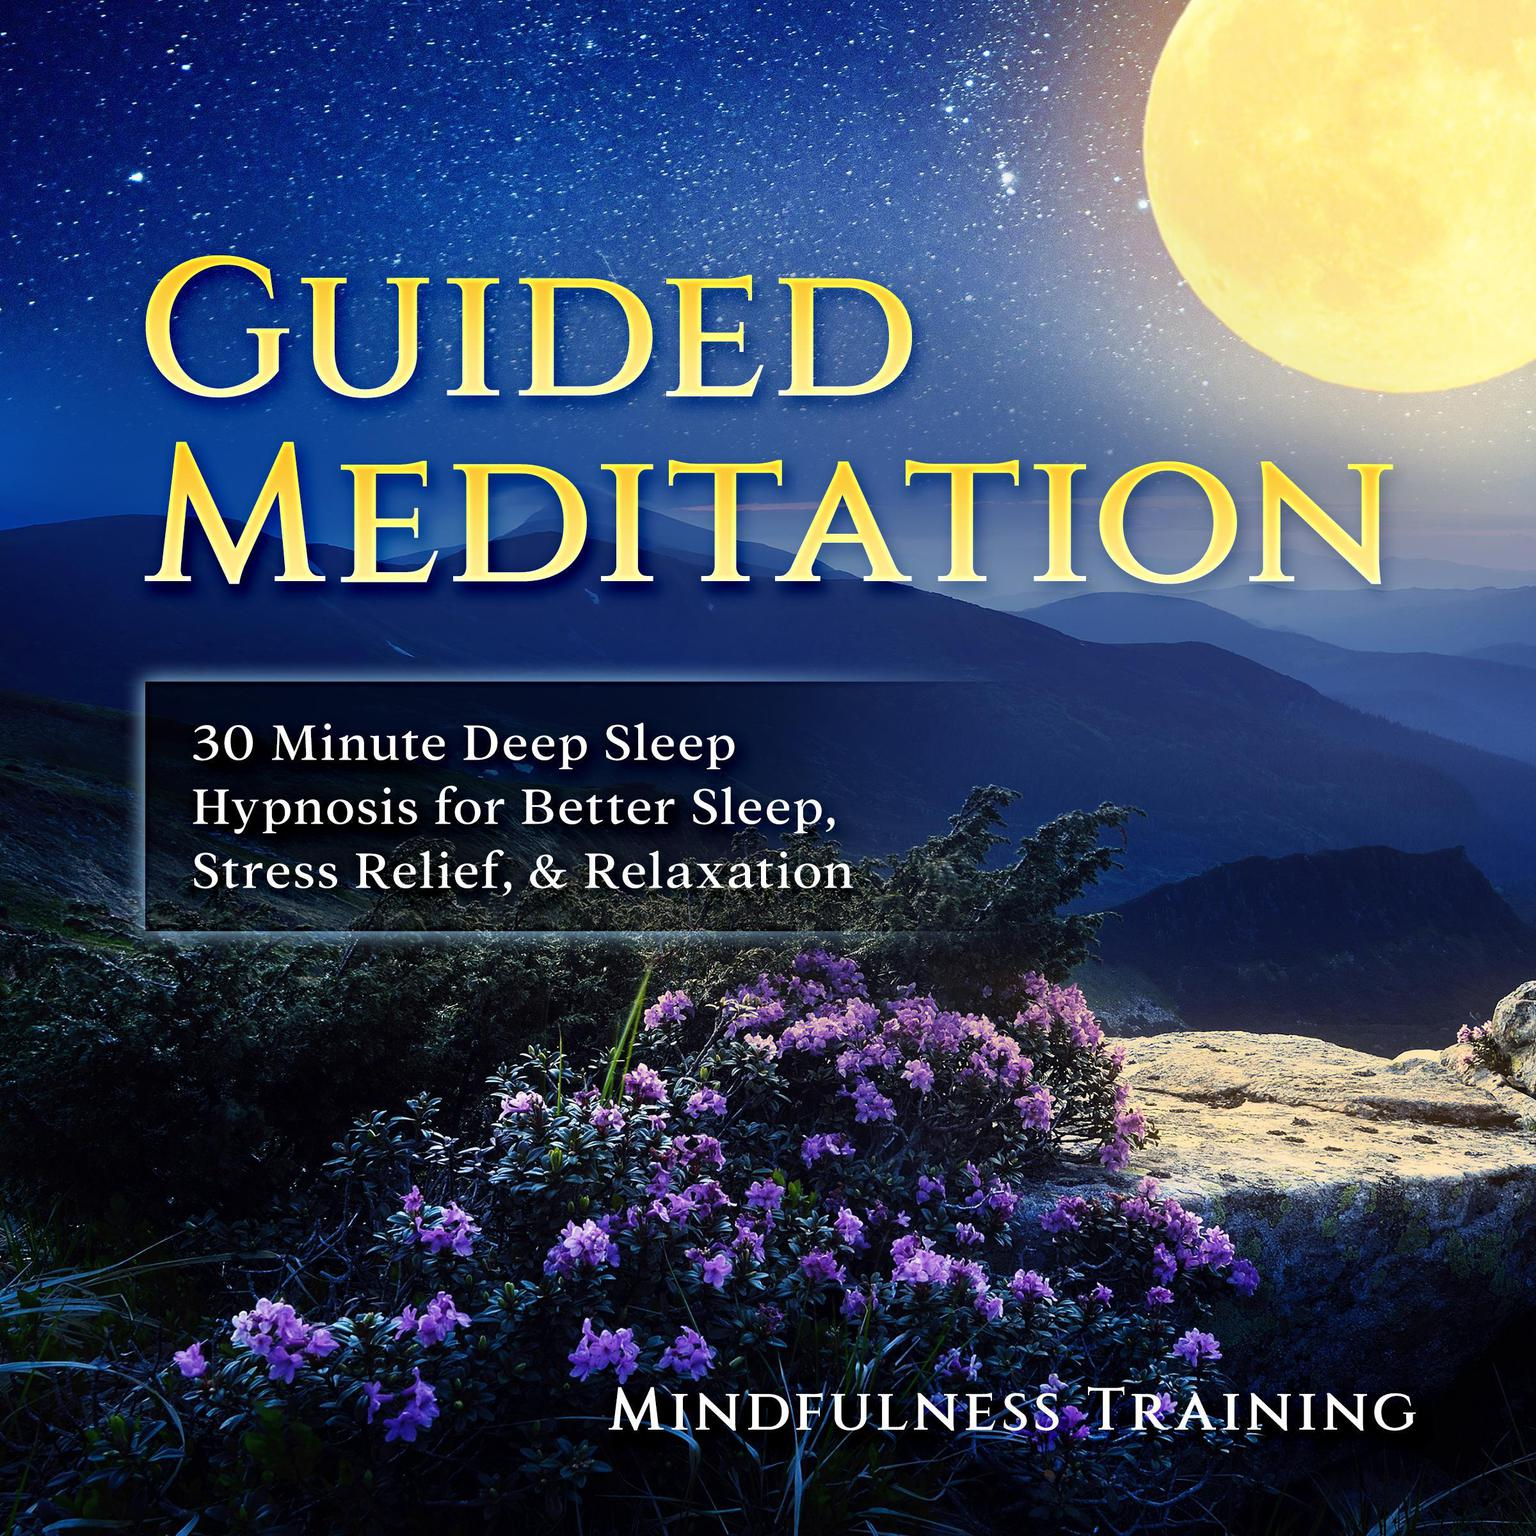 Printable Guided Meditation: 30 Minute Deep Sleep Hypnosis for Better Sleep, Stress Relief, & Relaxation (Self Hypnosis, Affirmations, Guided Imagery & Relaxation Techniques) Audiobook Cover Art